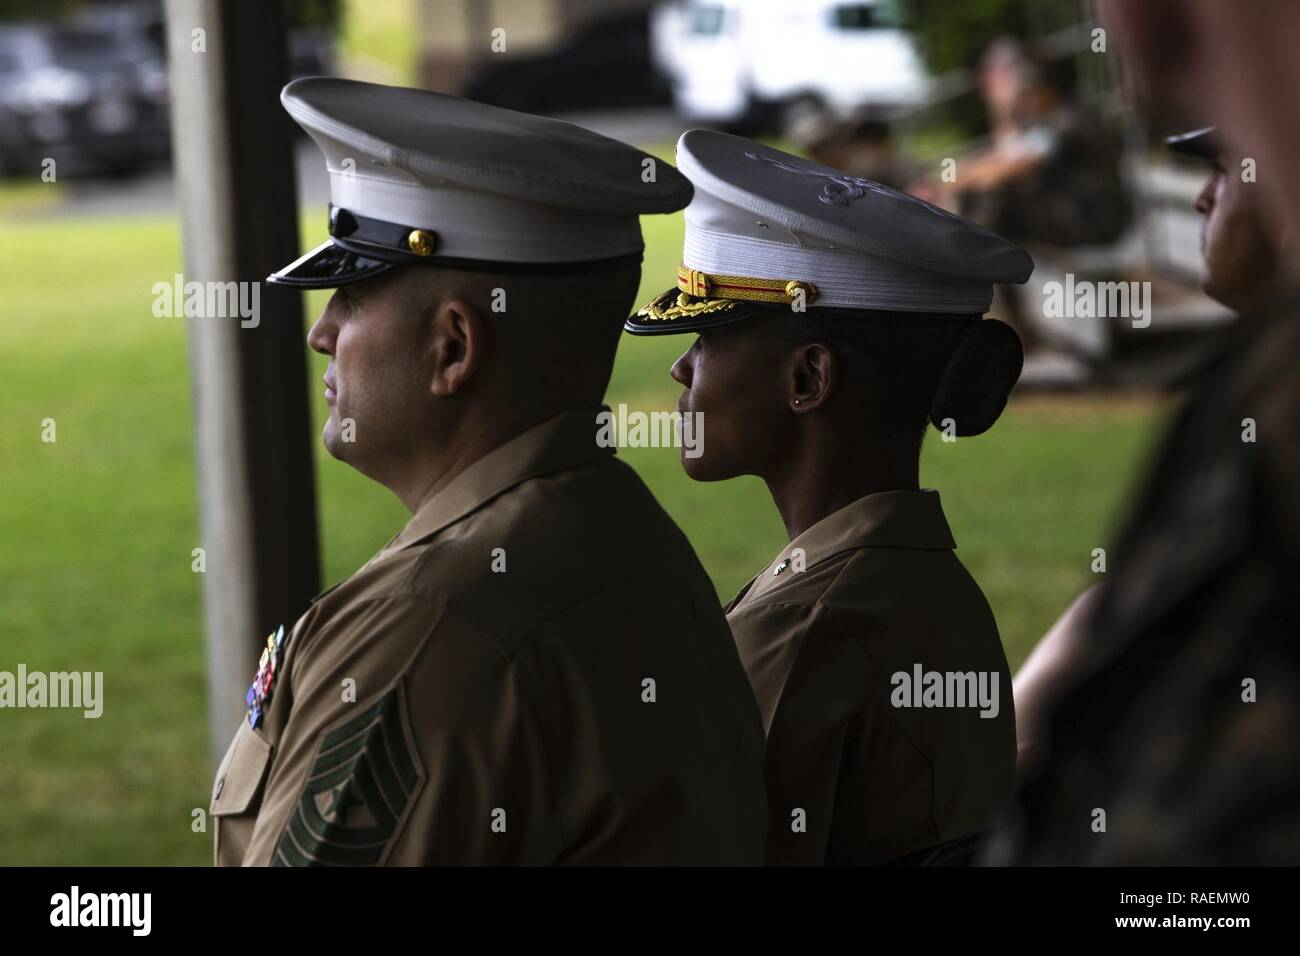 25d86924552 Sergeant Major Of The Marine Corps Stock Photos   Sergeant Major Of ...